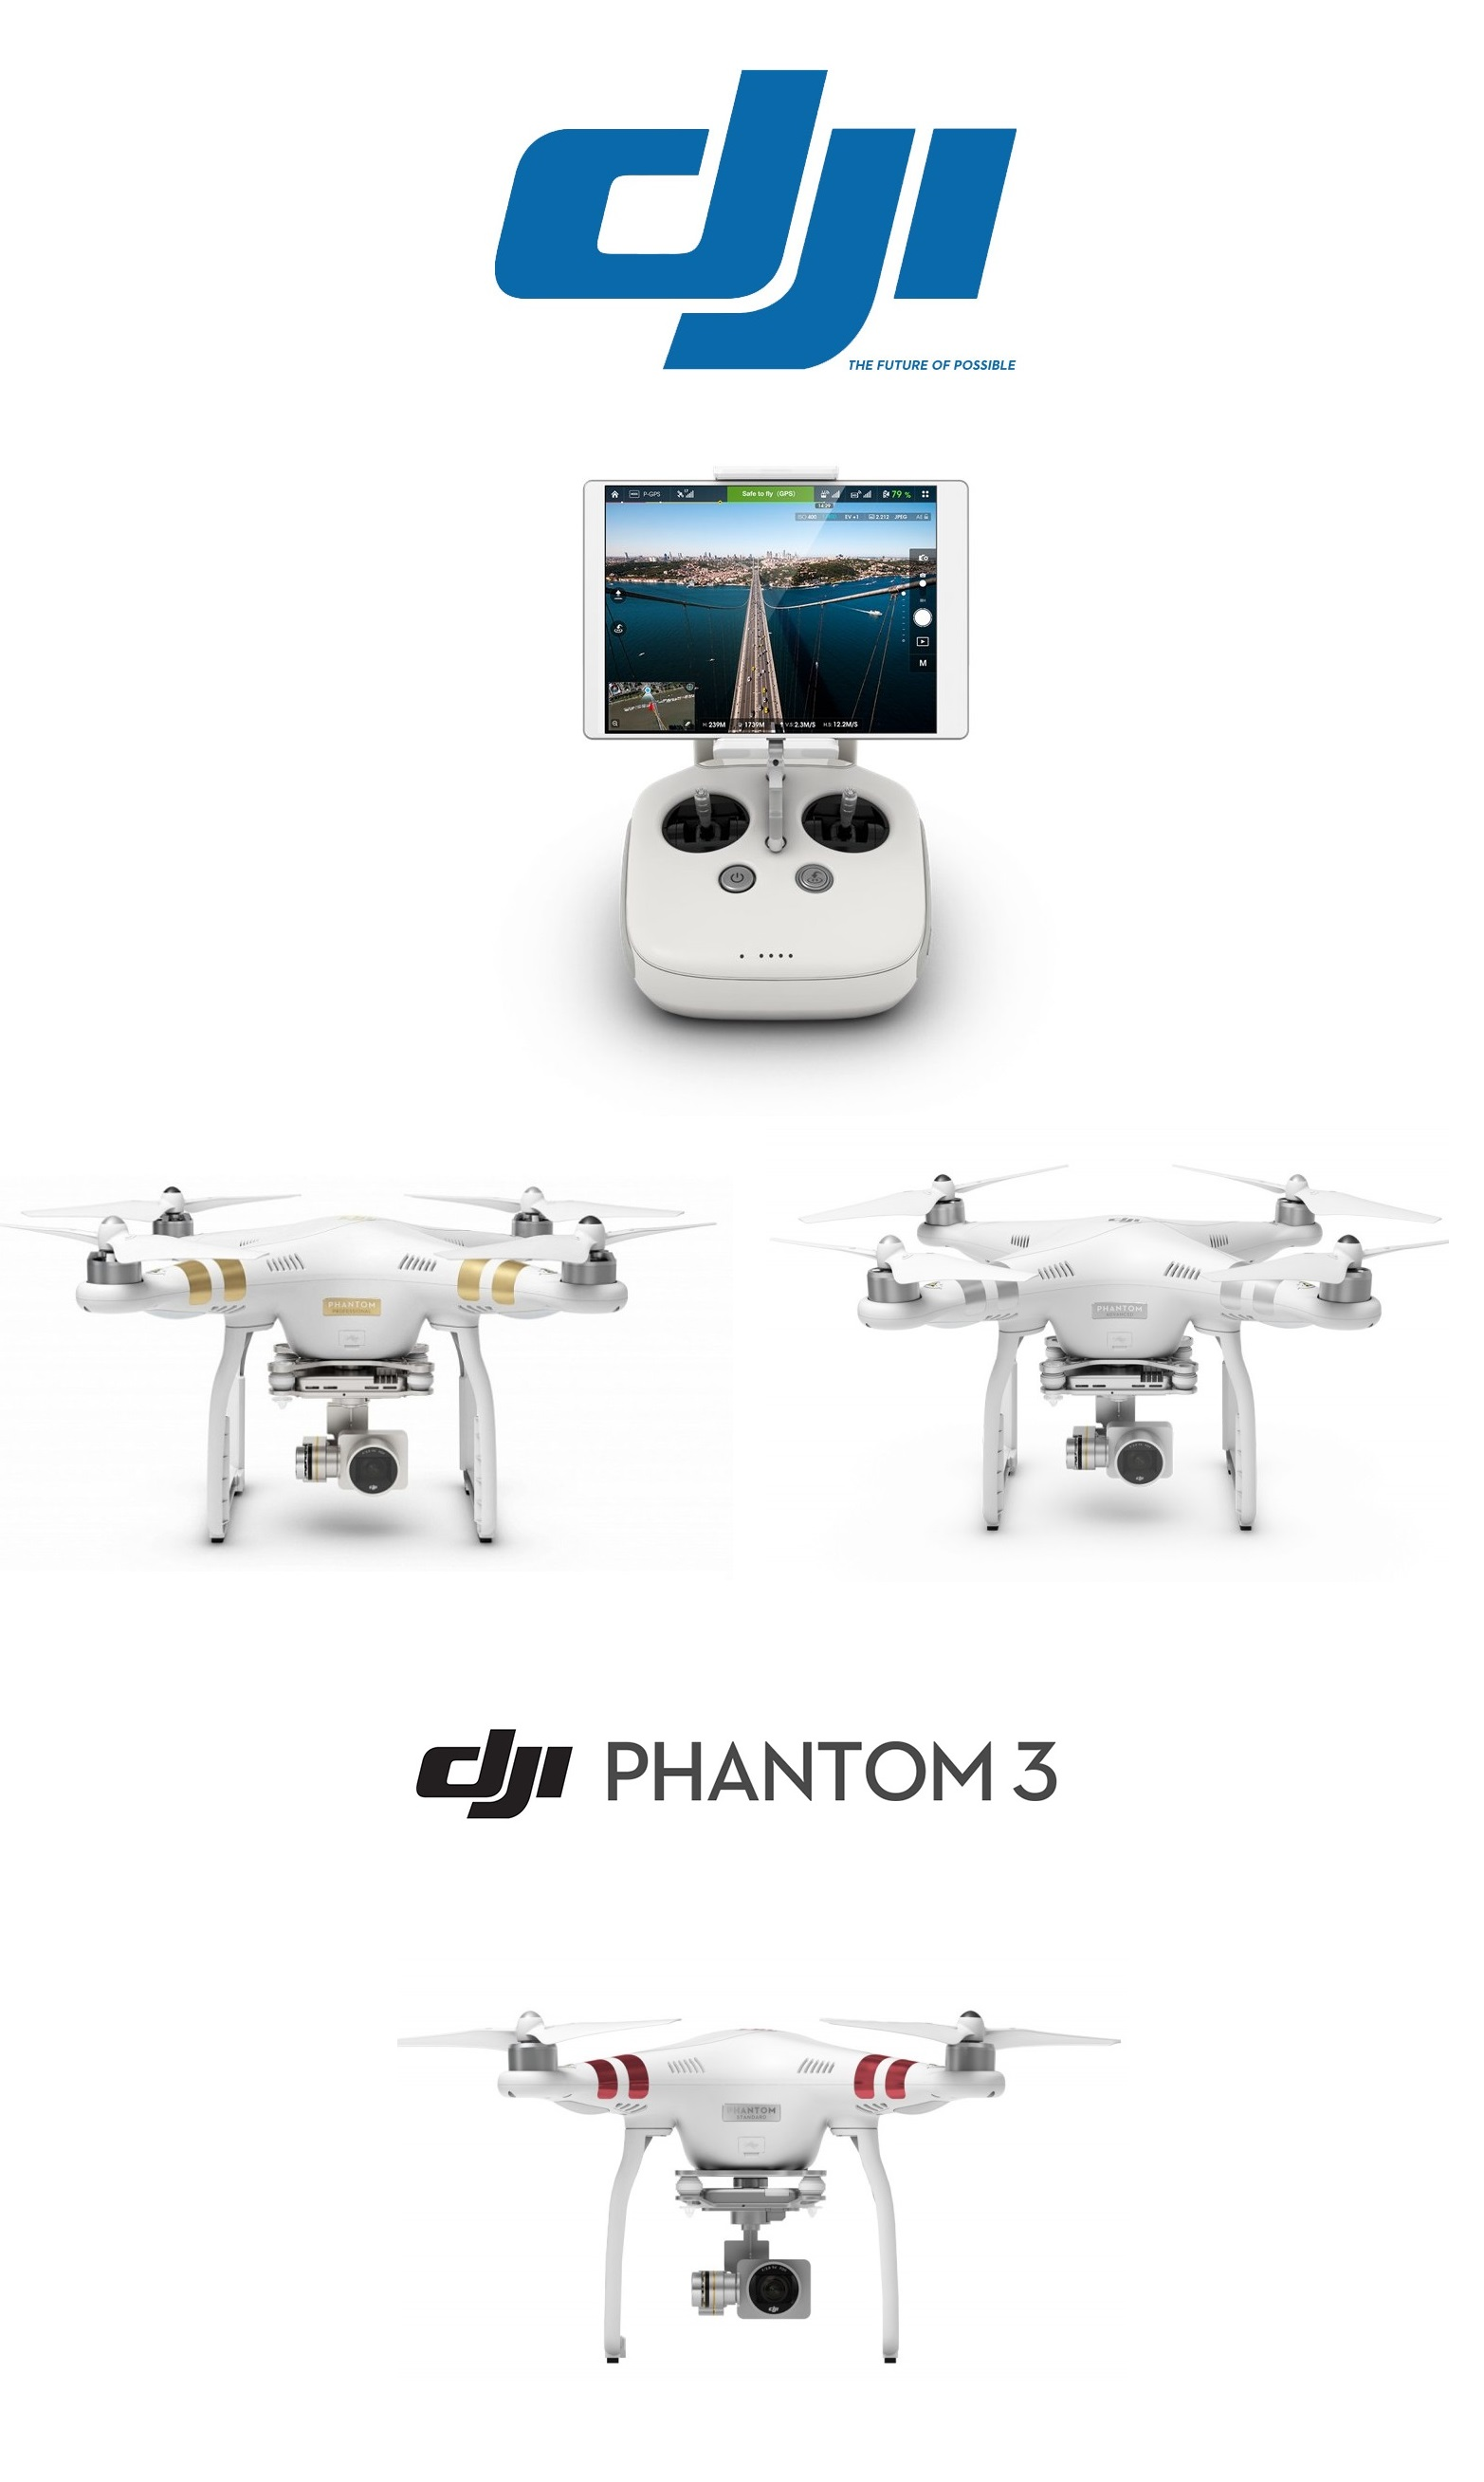 DJI Phantom 3 logo